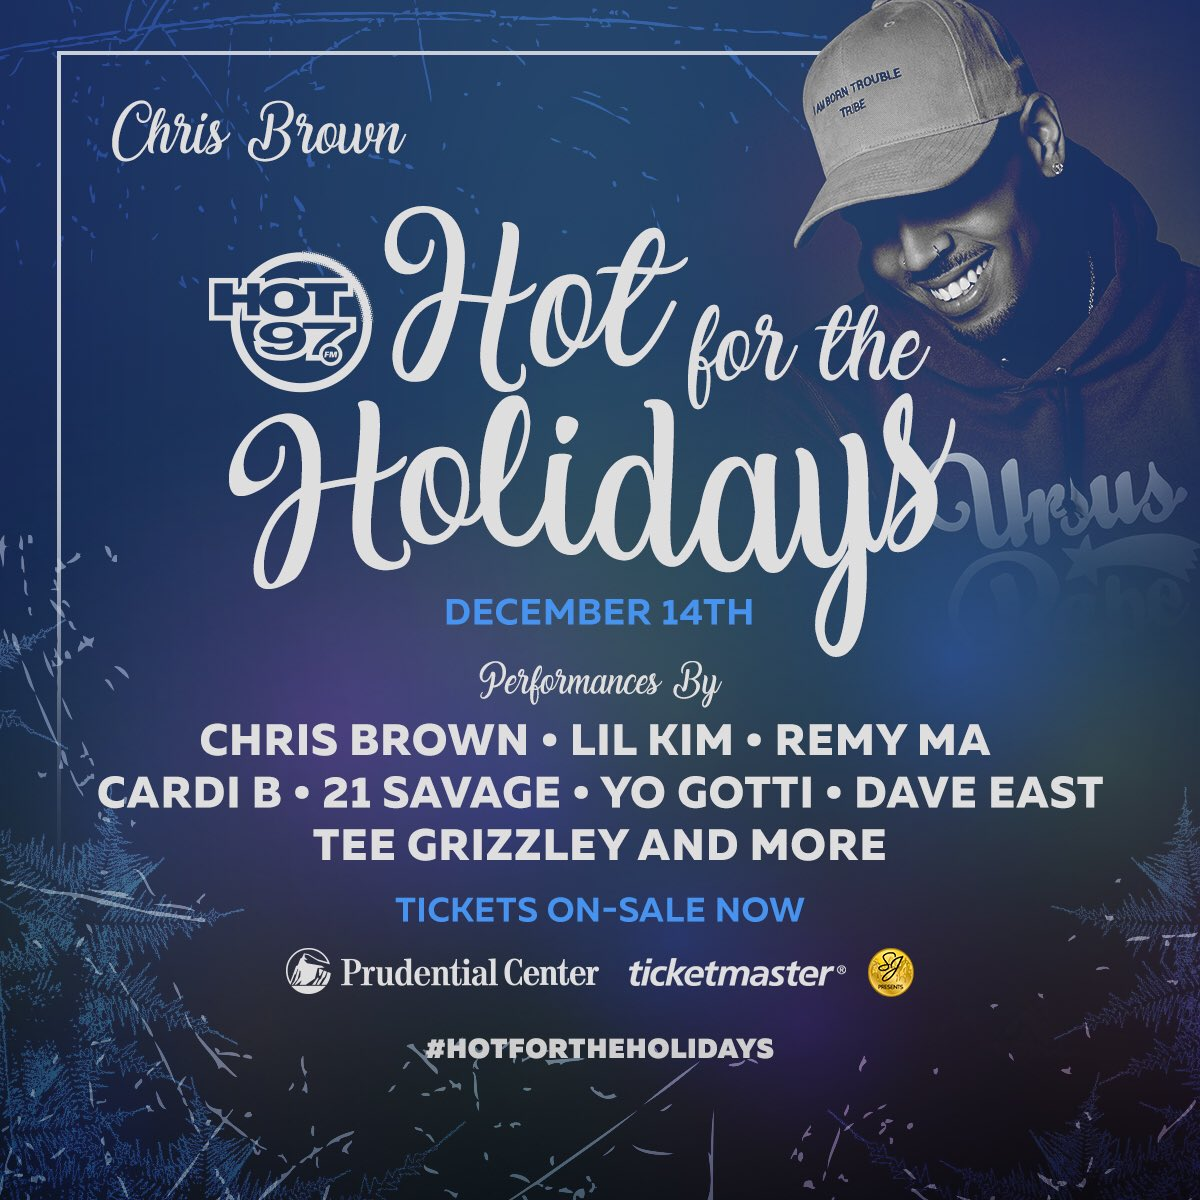 TONIGHT! NYC #Hot4TheHolidays �� https://t.co/DxFSrDMVtZ